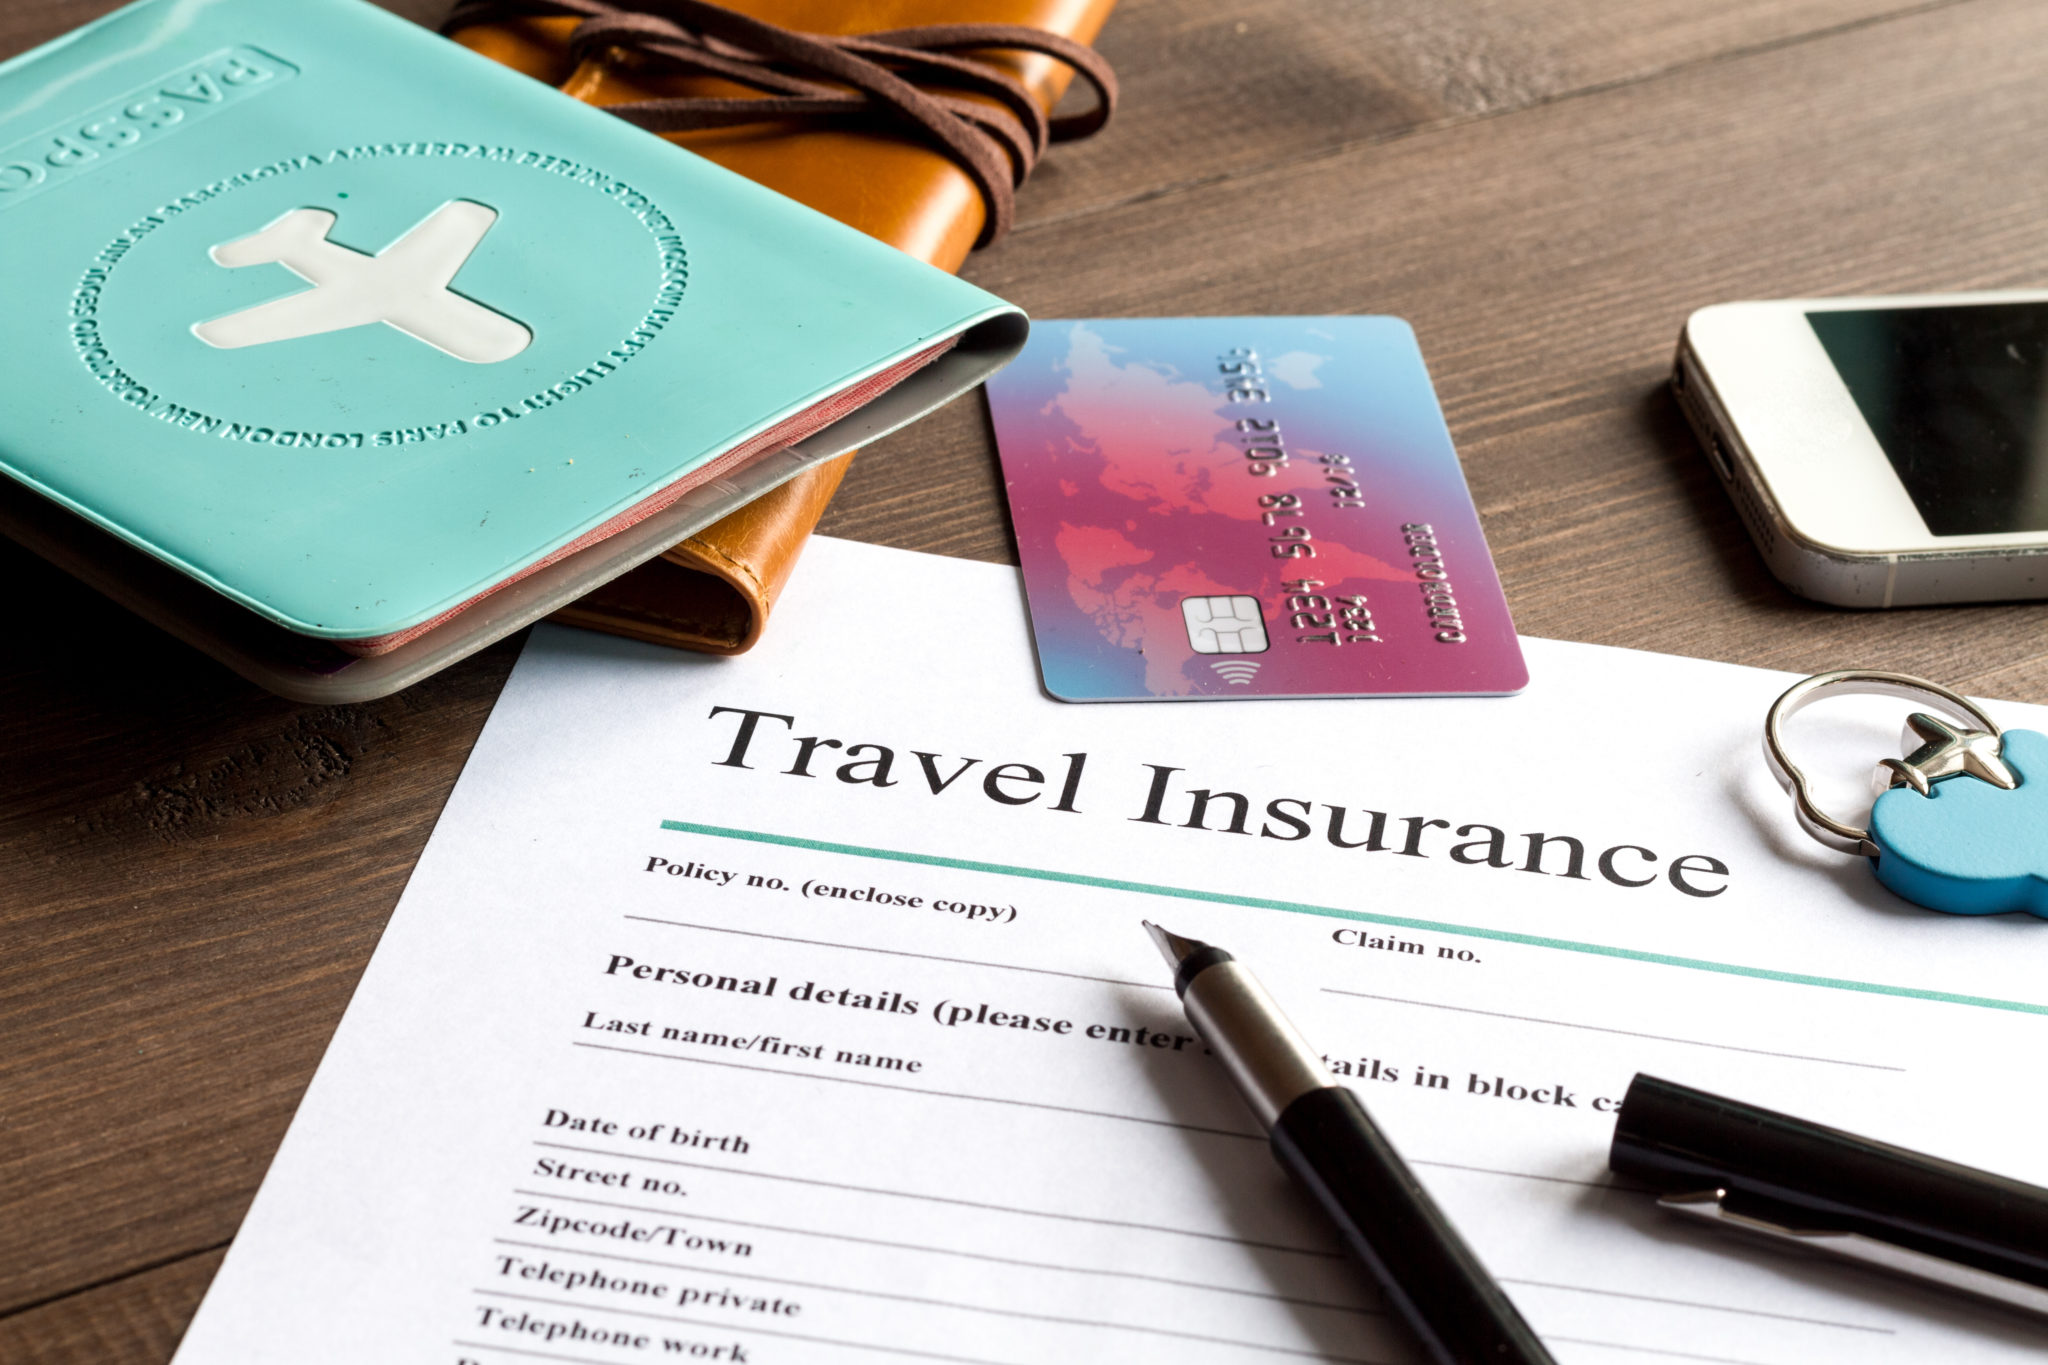 Travel Accident Insurance - Terms | American Express